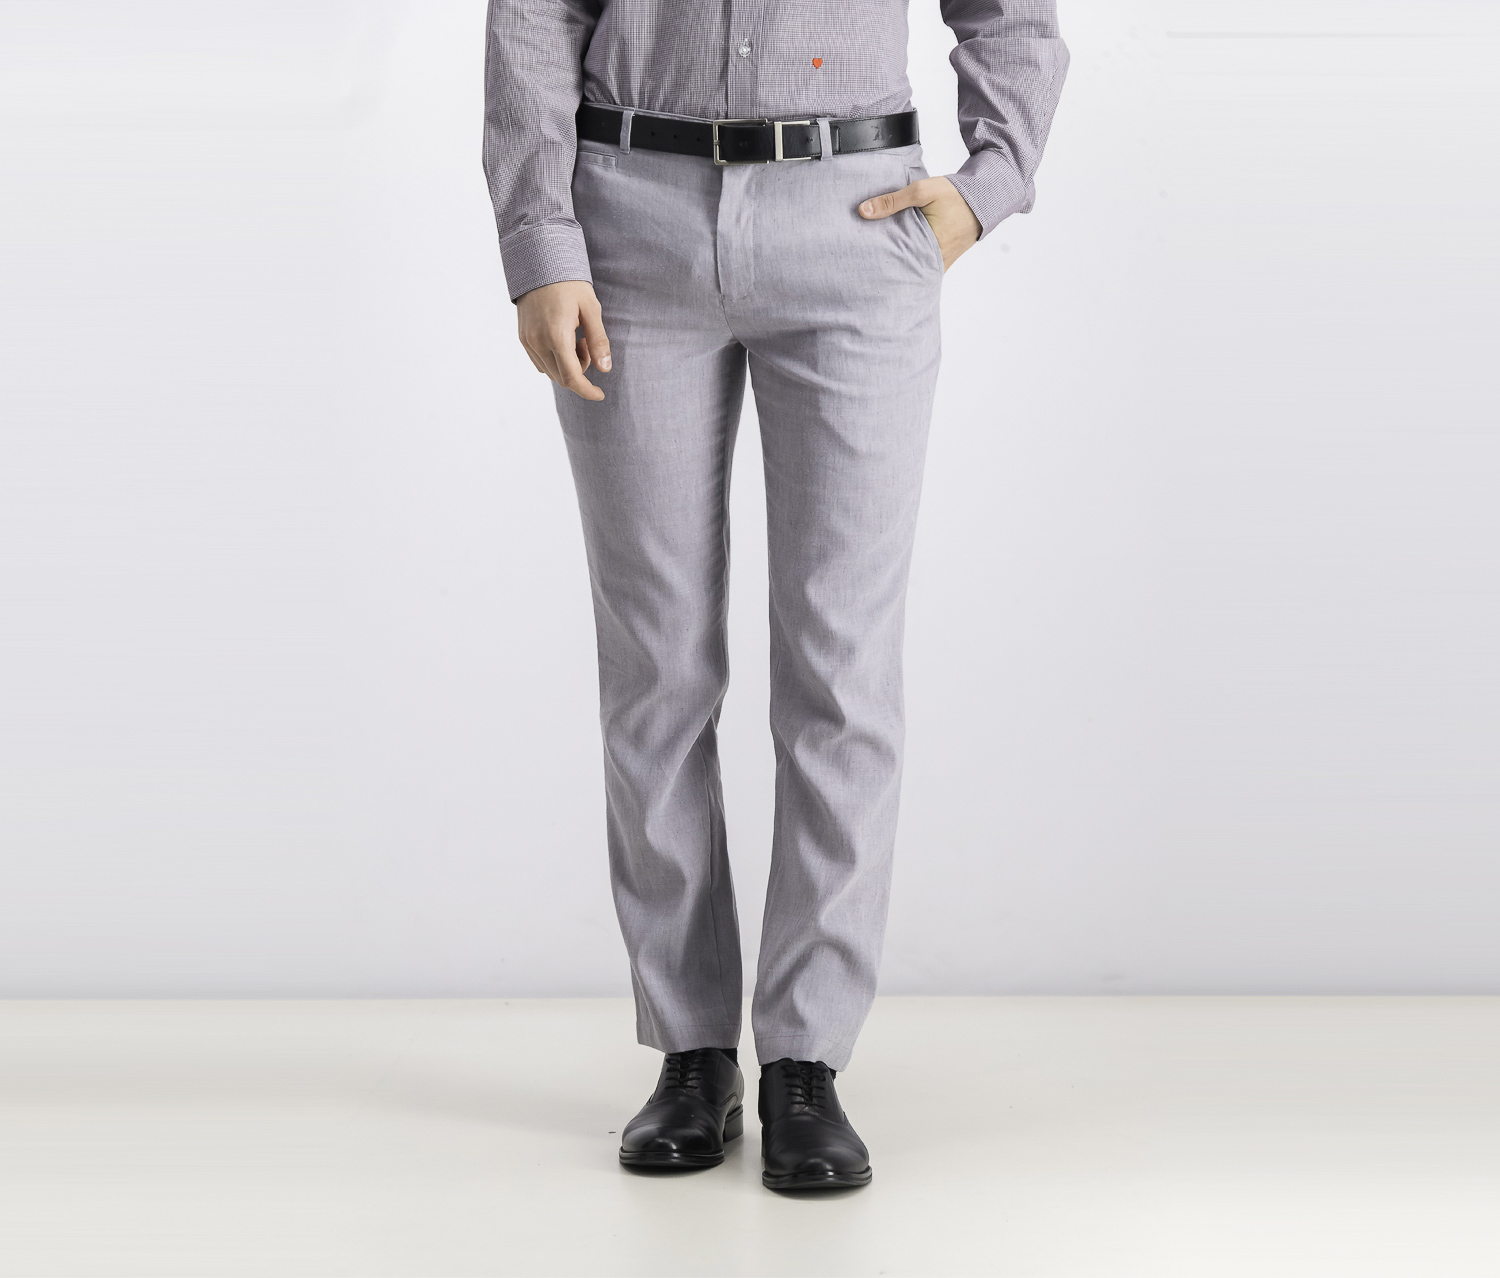 Men's Slim-Fit Linen Pants, Light Grey Combo